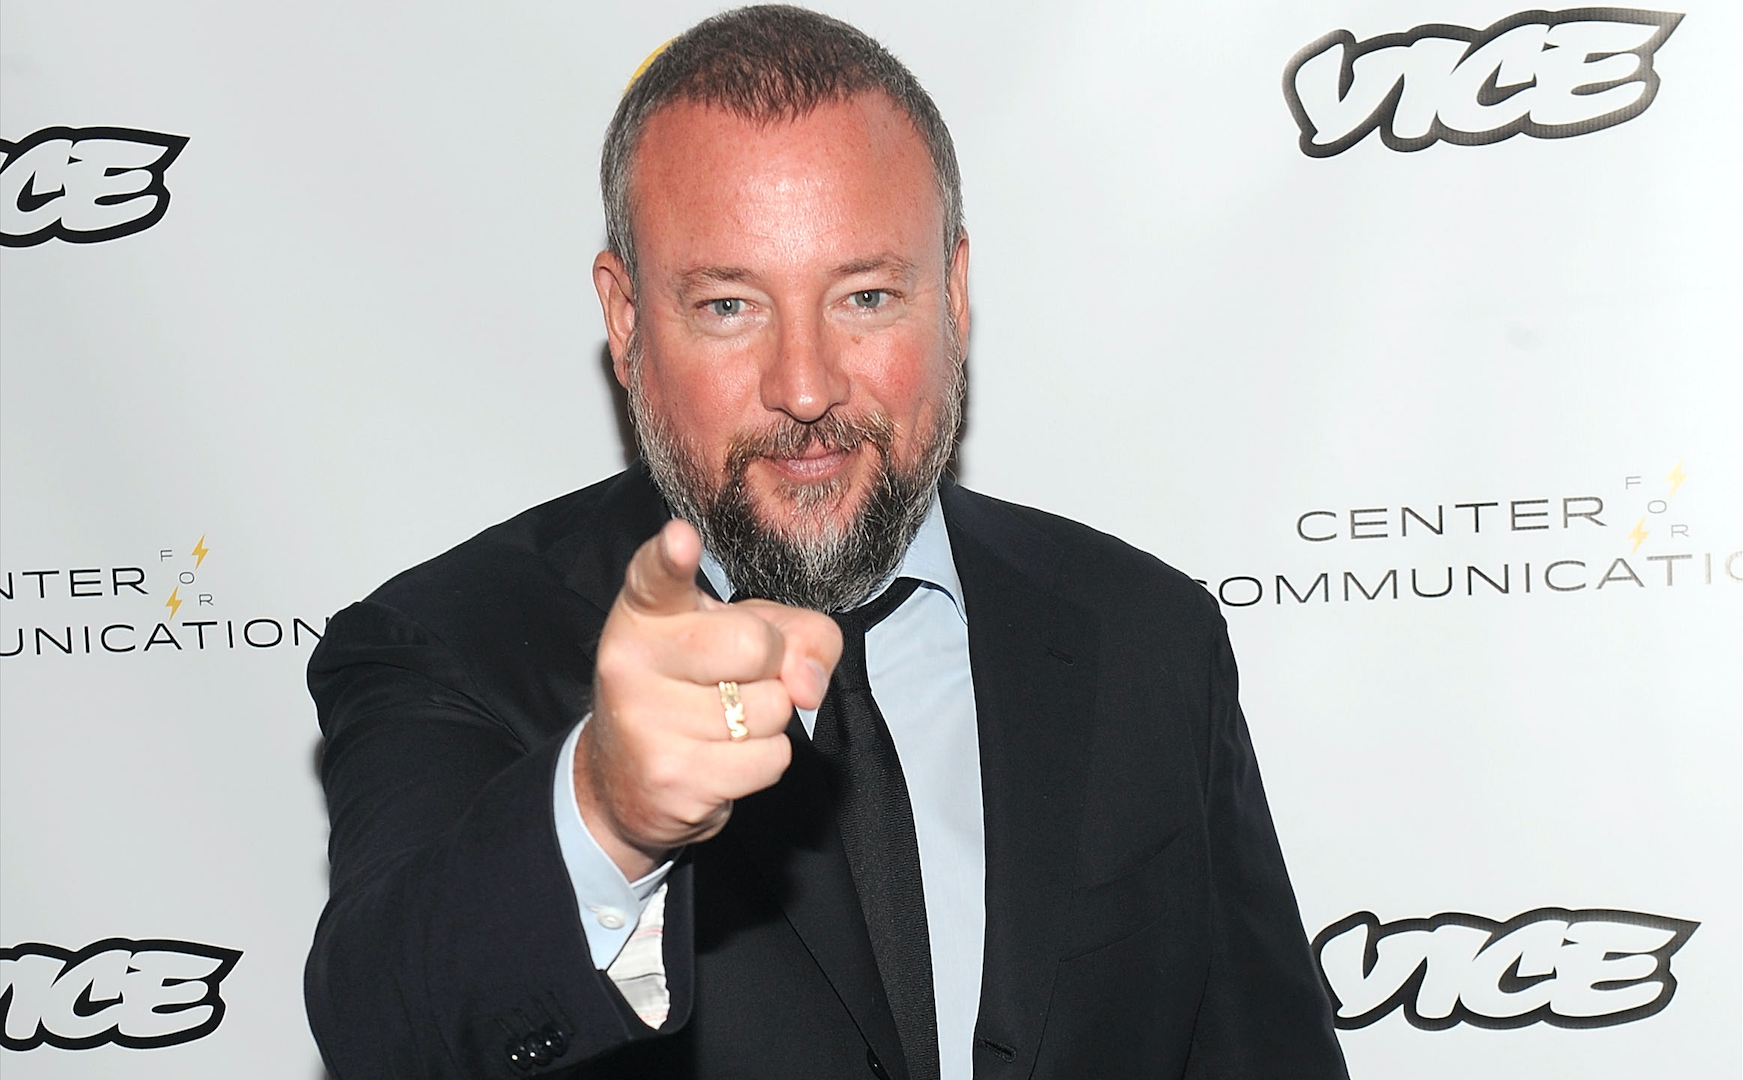 Shane Smith Roast By The Center For Communication